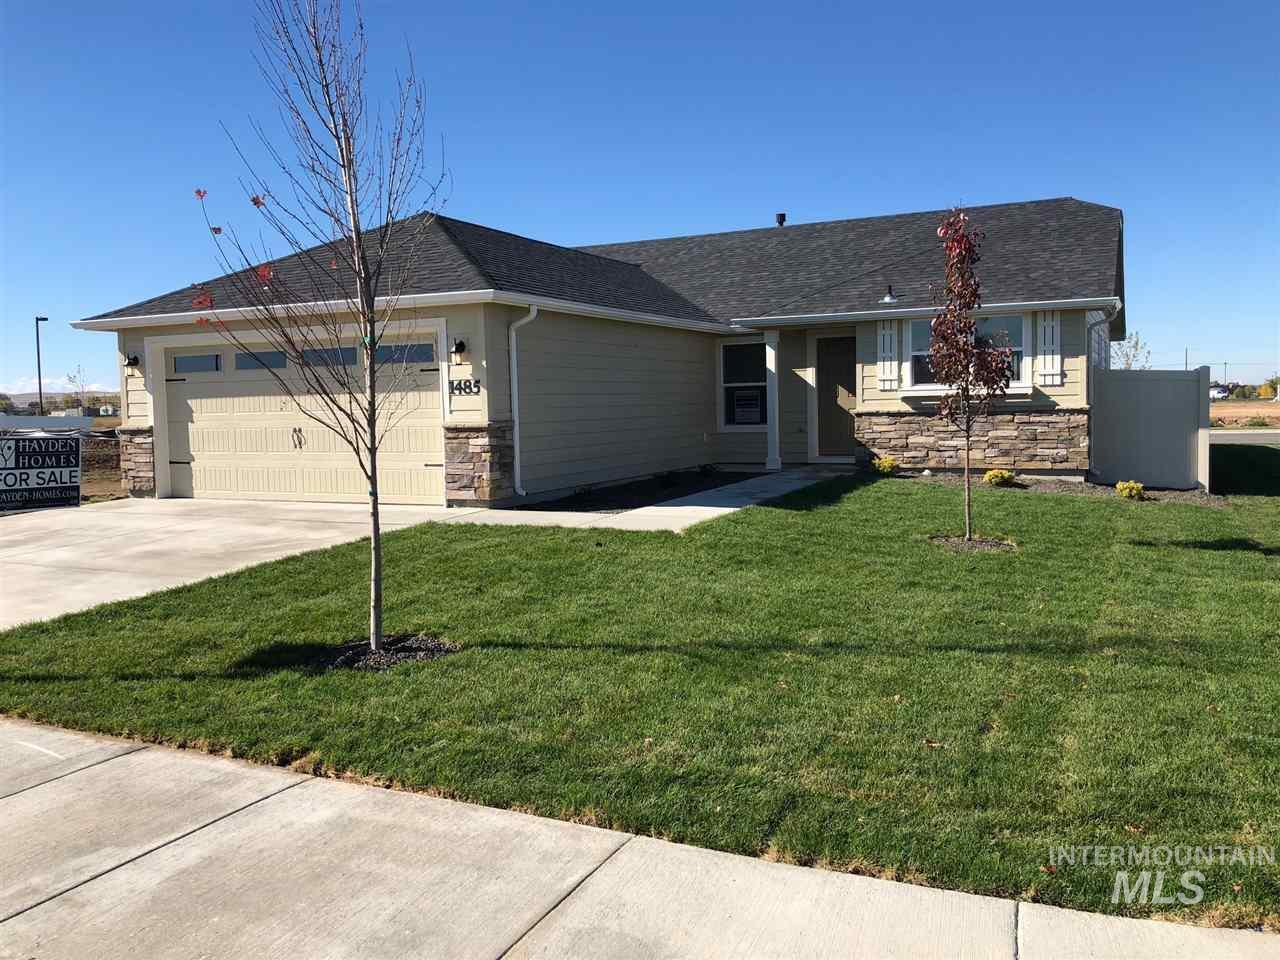 1253 N Hale Canyon, Kuna, Idaho 83634, 3 Bedrooms, 2 Bathrooms, Residential For Sale, Price $244,990, 98747530